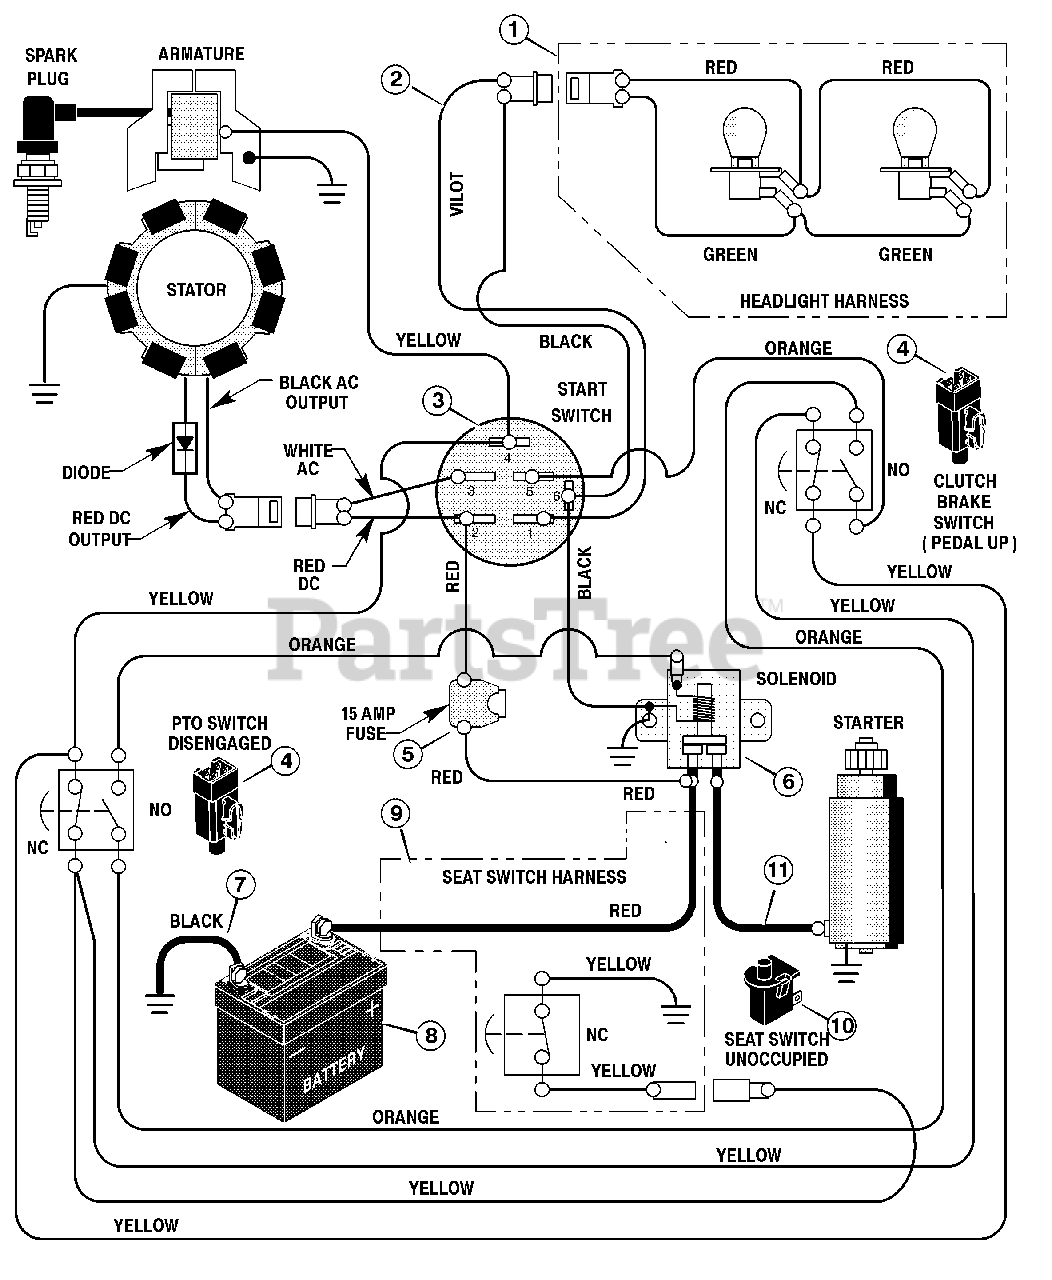 Briggs & Stratton Parts on the Electrical System Diagram